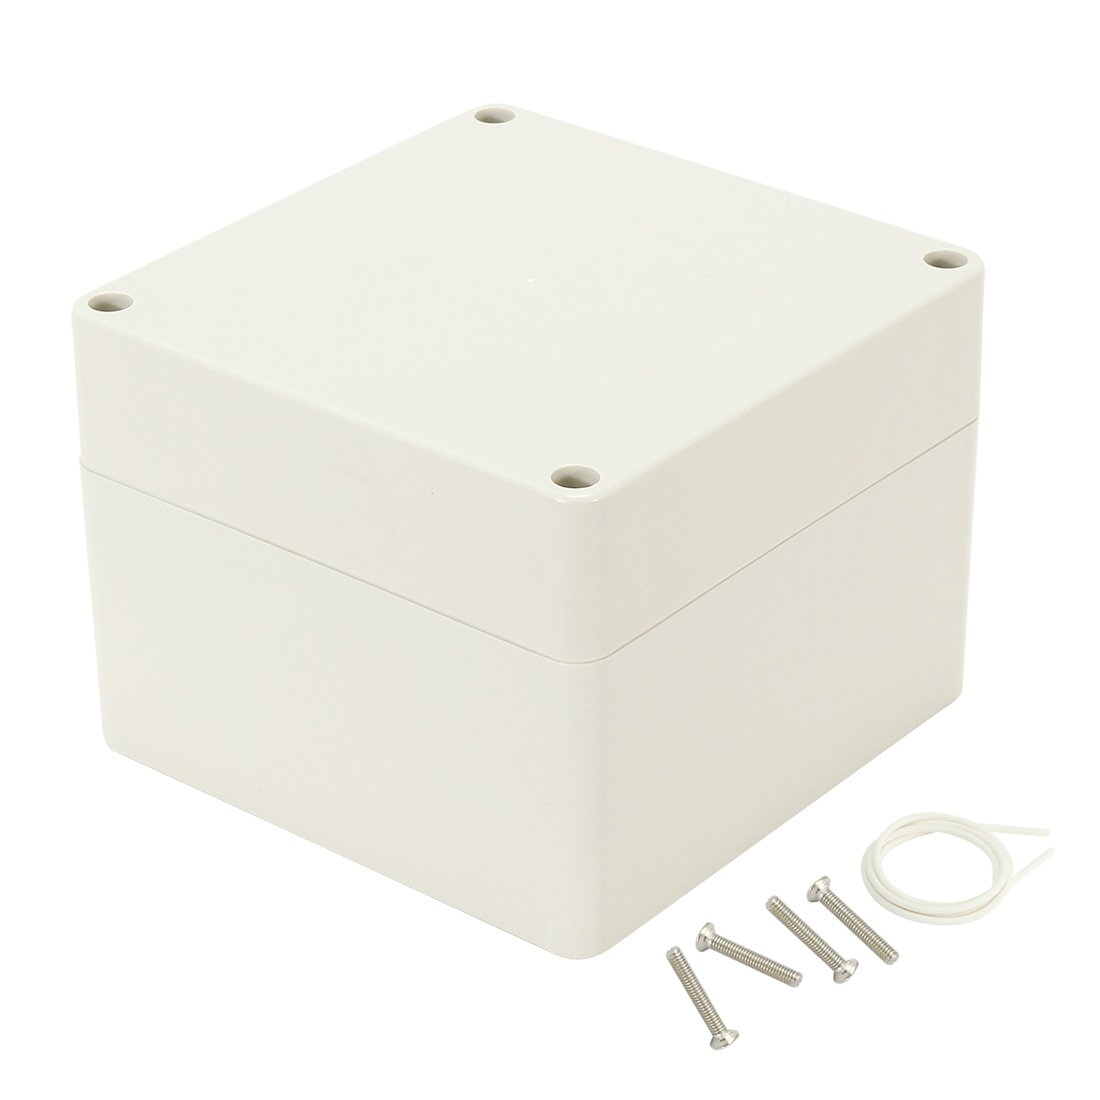 uxcell 4.7x4.7x3.54 120mmx120mmx90mm ABS Junction Box Universal Electric Project Enclosure